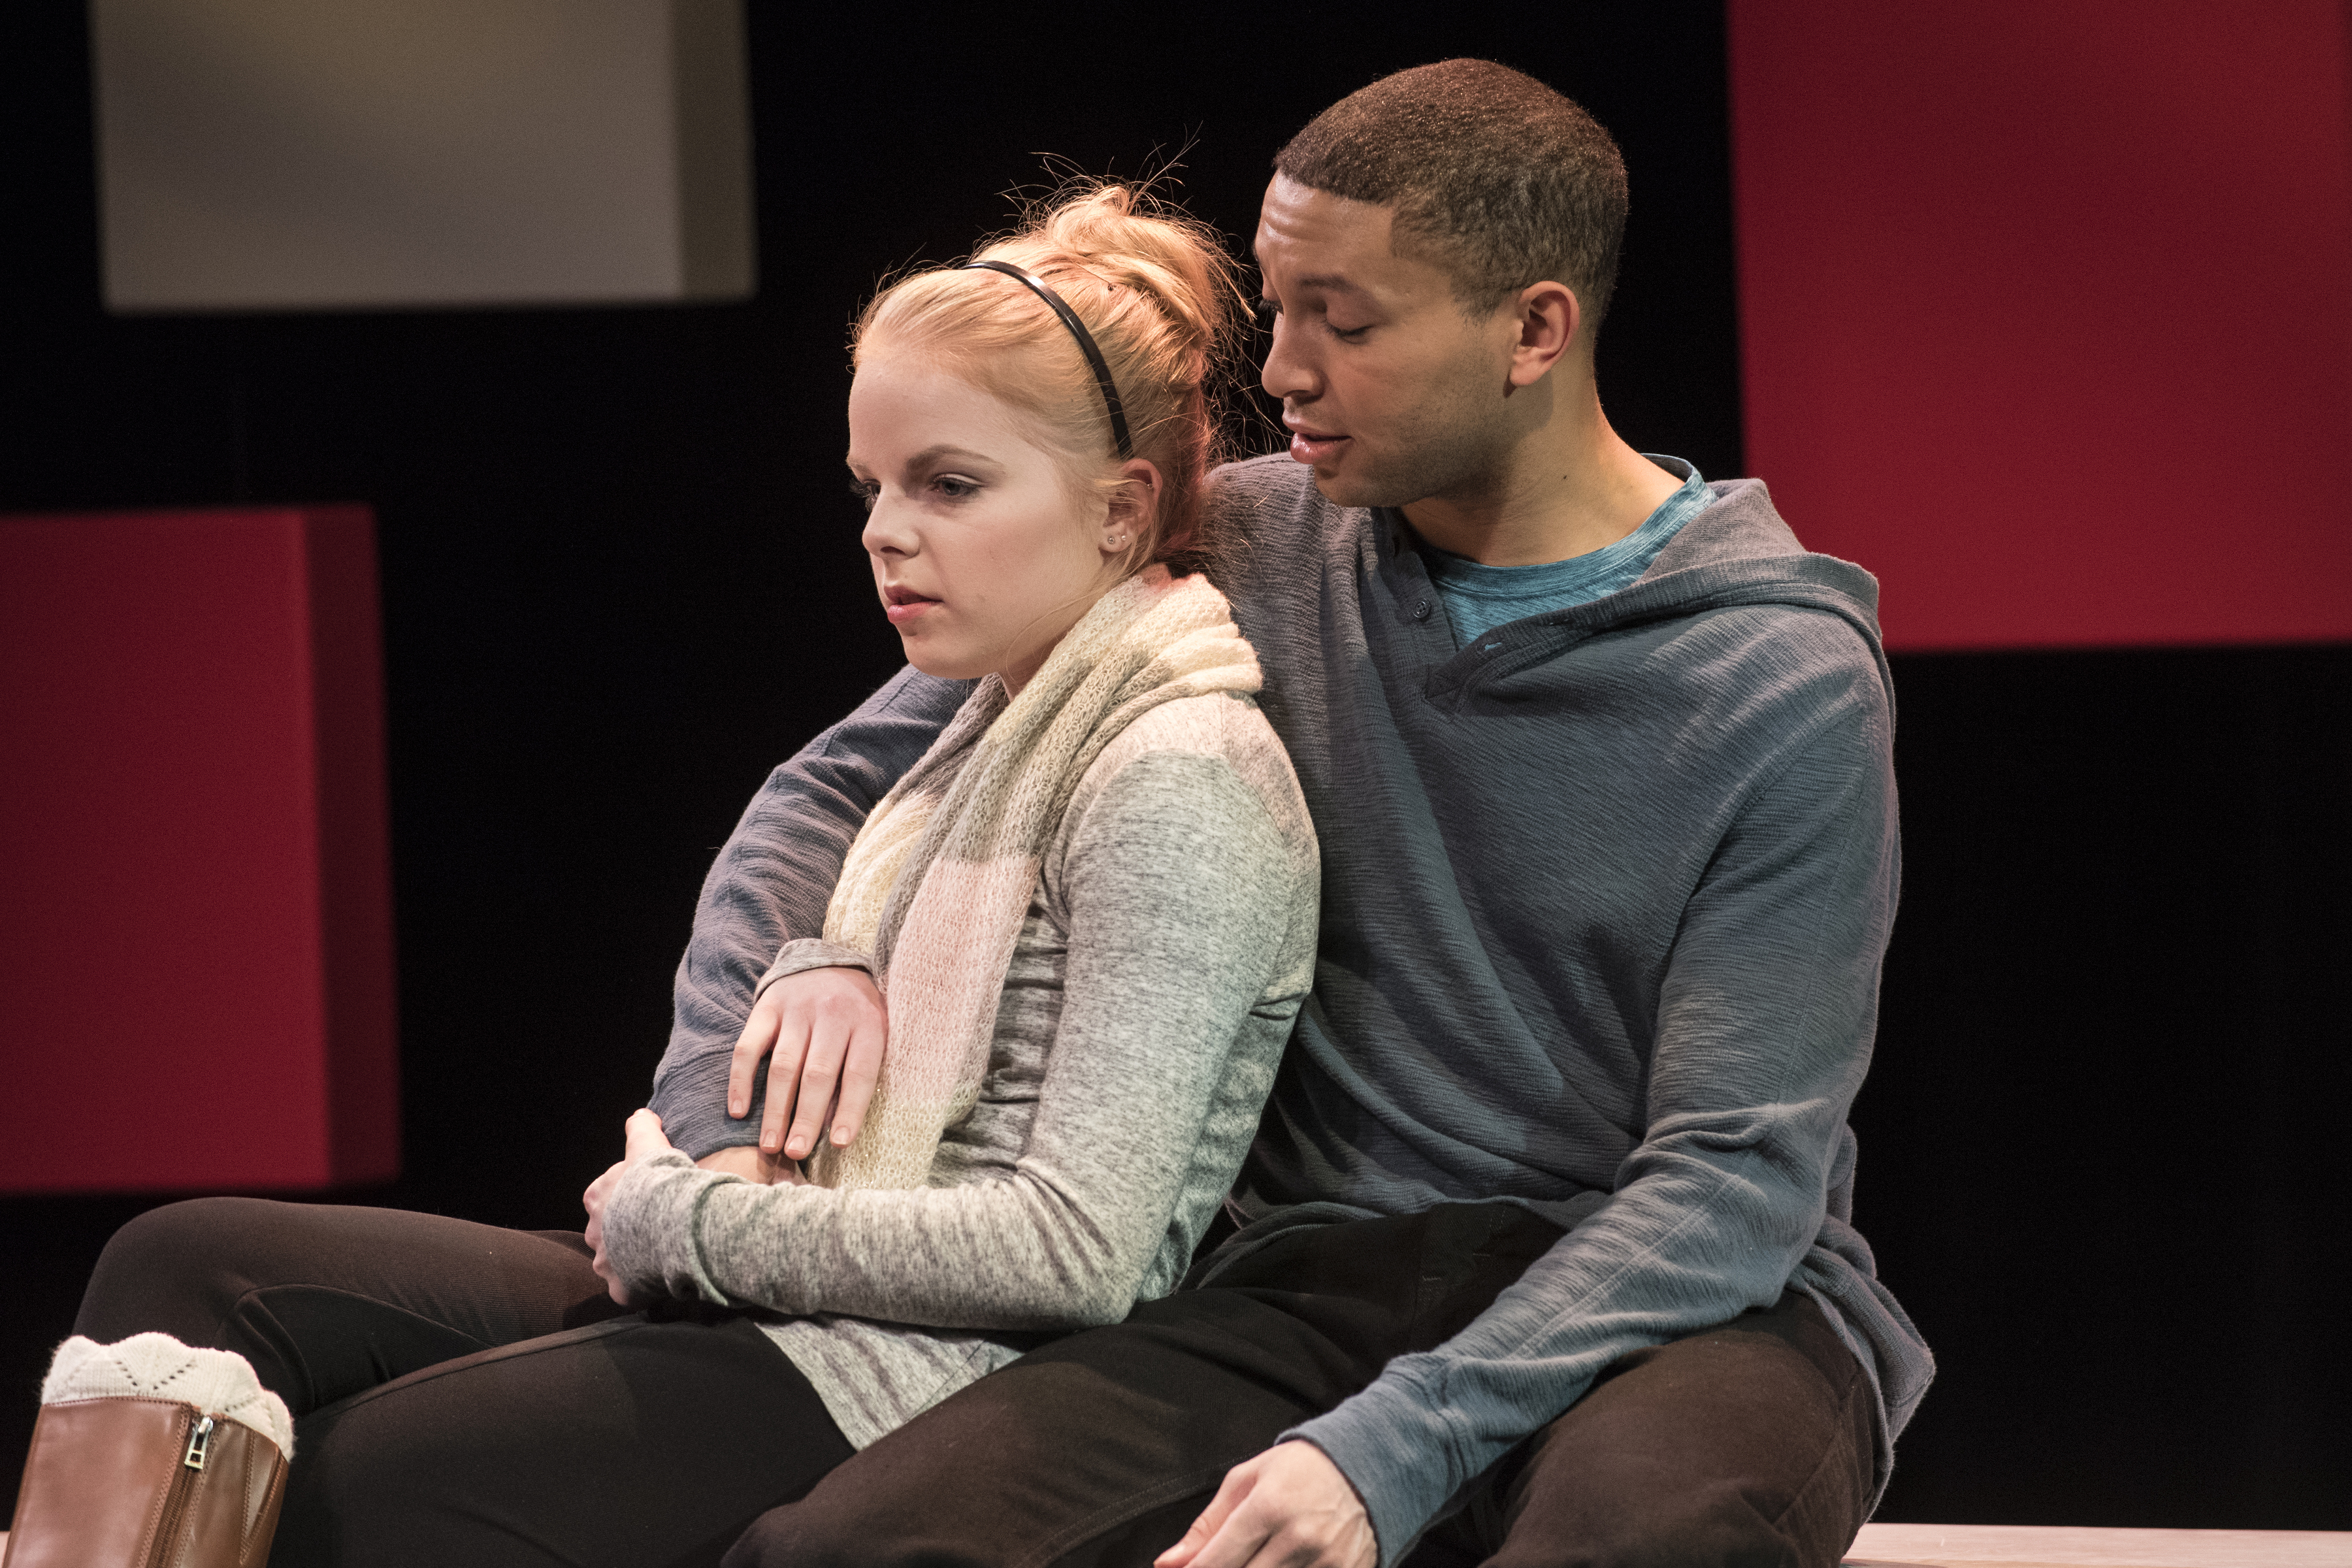 Baltimore production. Man with arm around woman